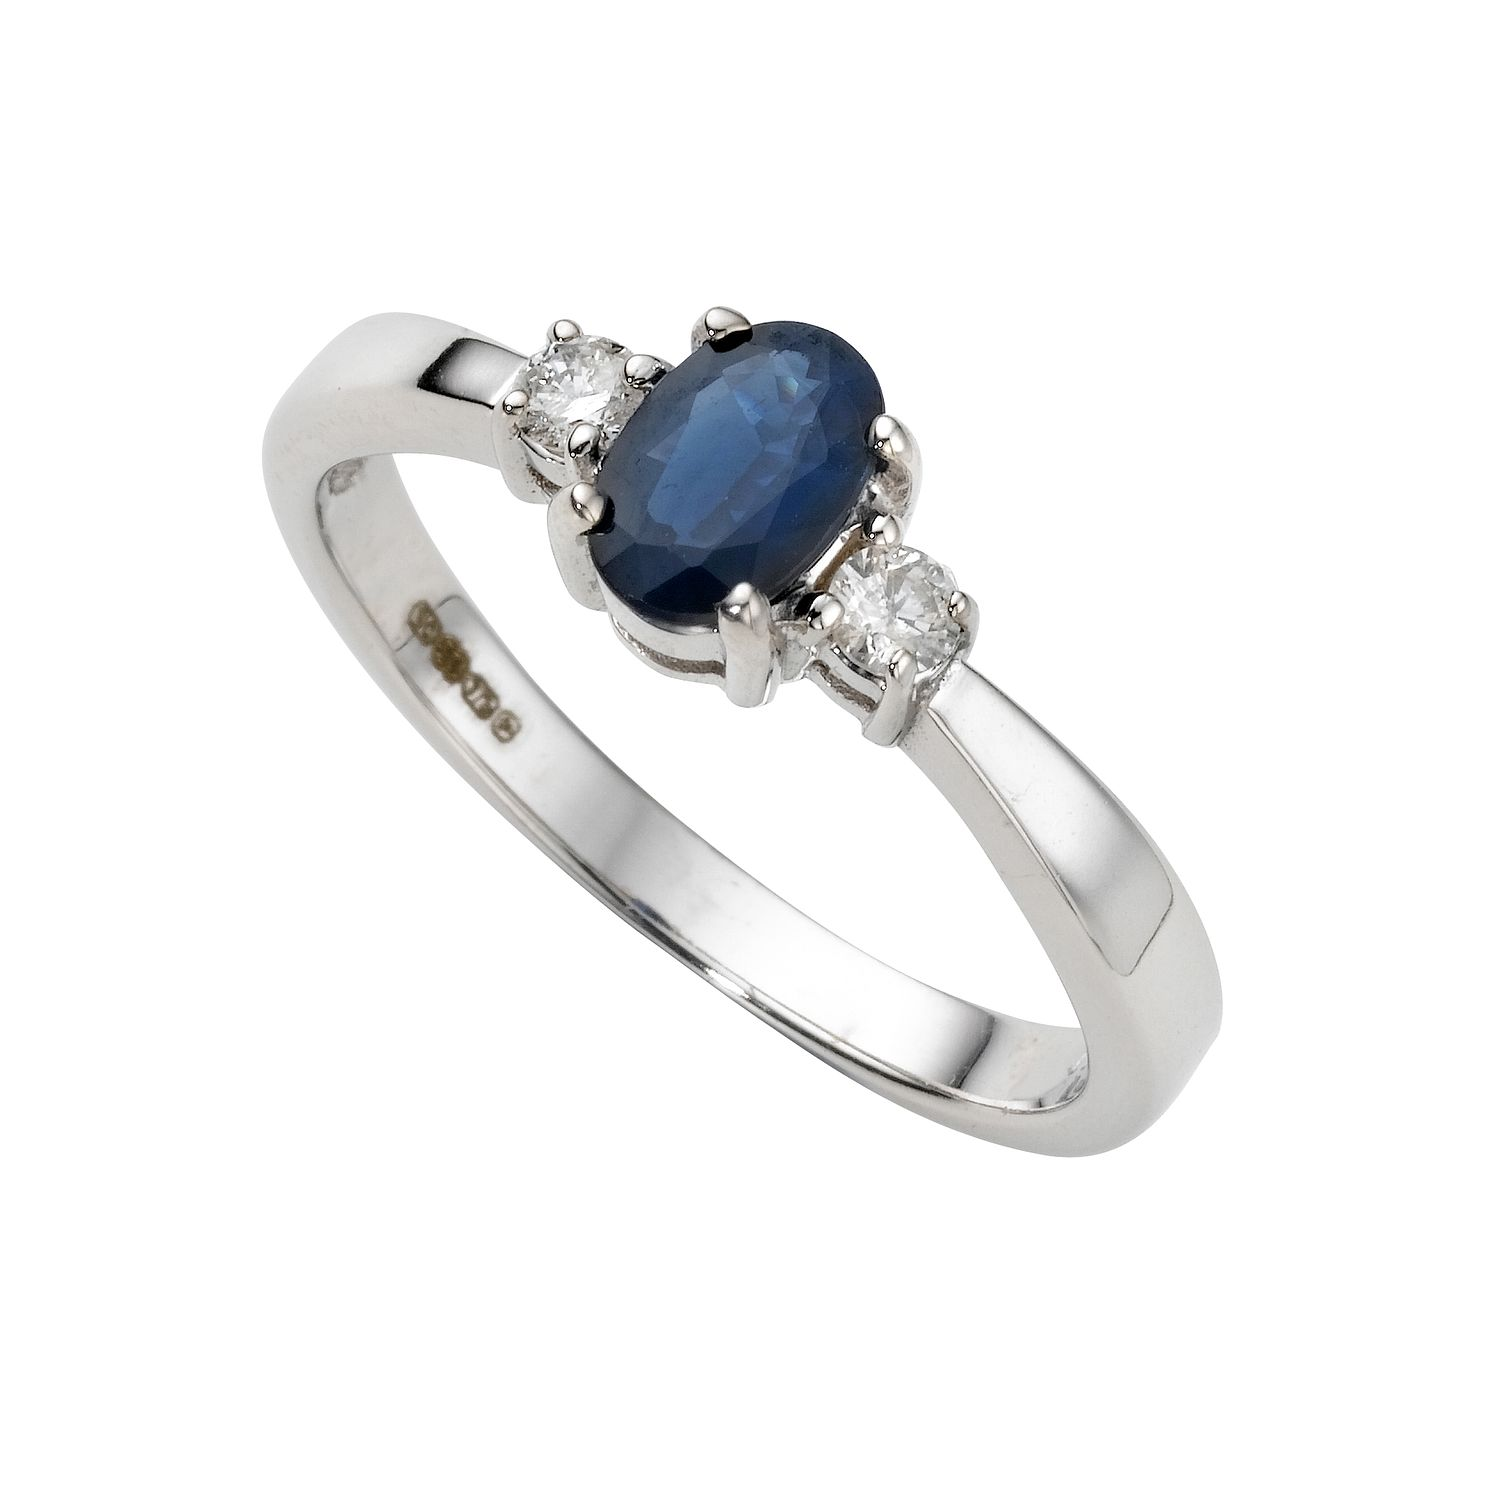 gallery rings saffire primavera betts sapphire products ring collectiondropcollectiondrop gold malcolm